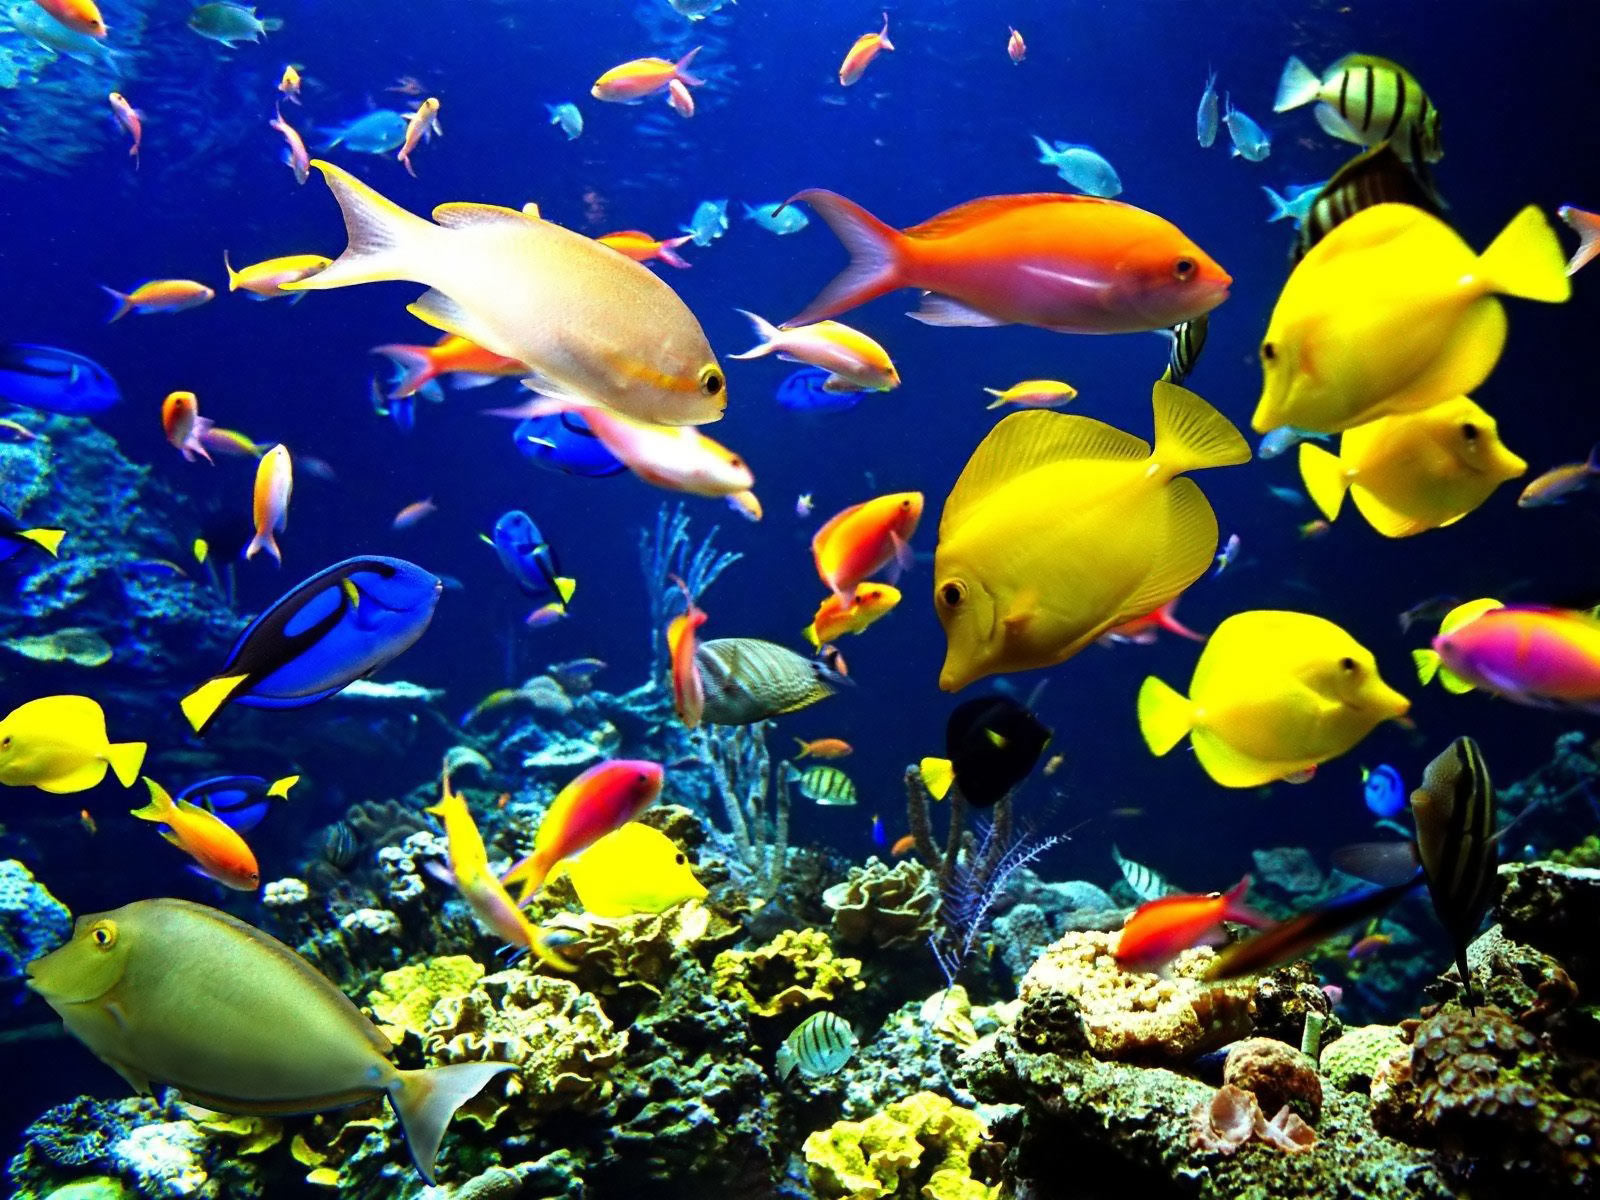 Android Live Wallpaper live fish wallpaper 1600x1200